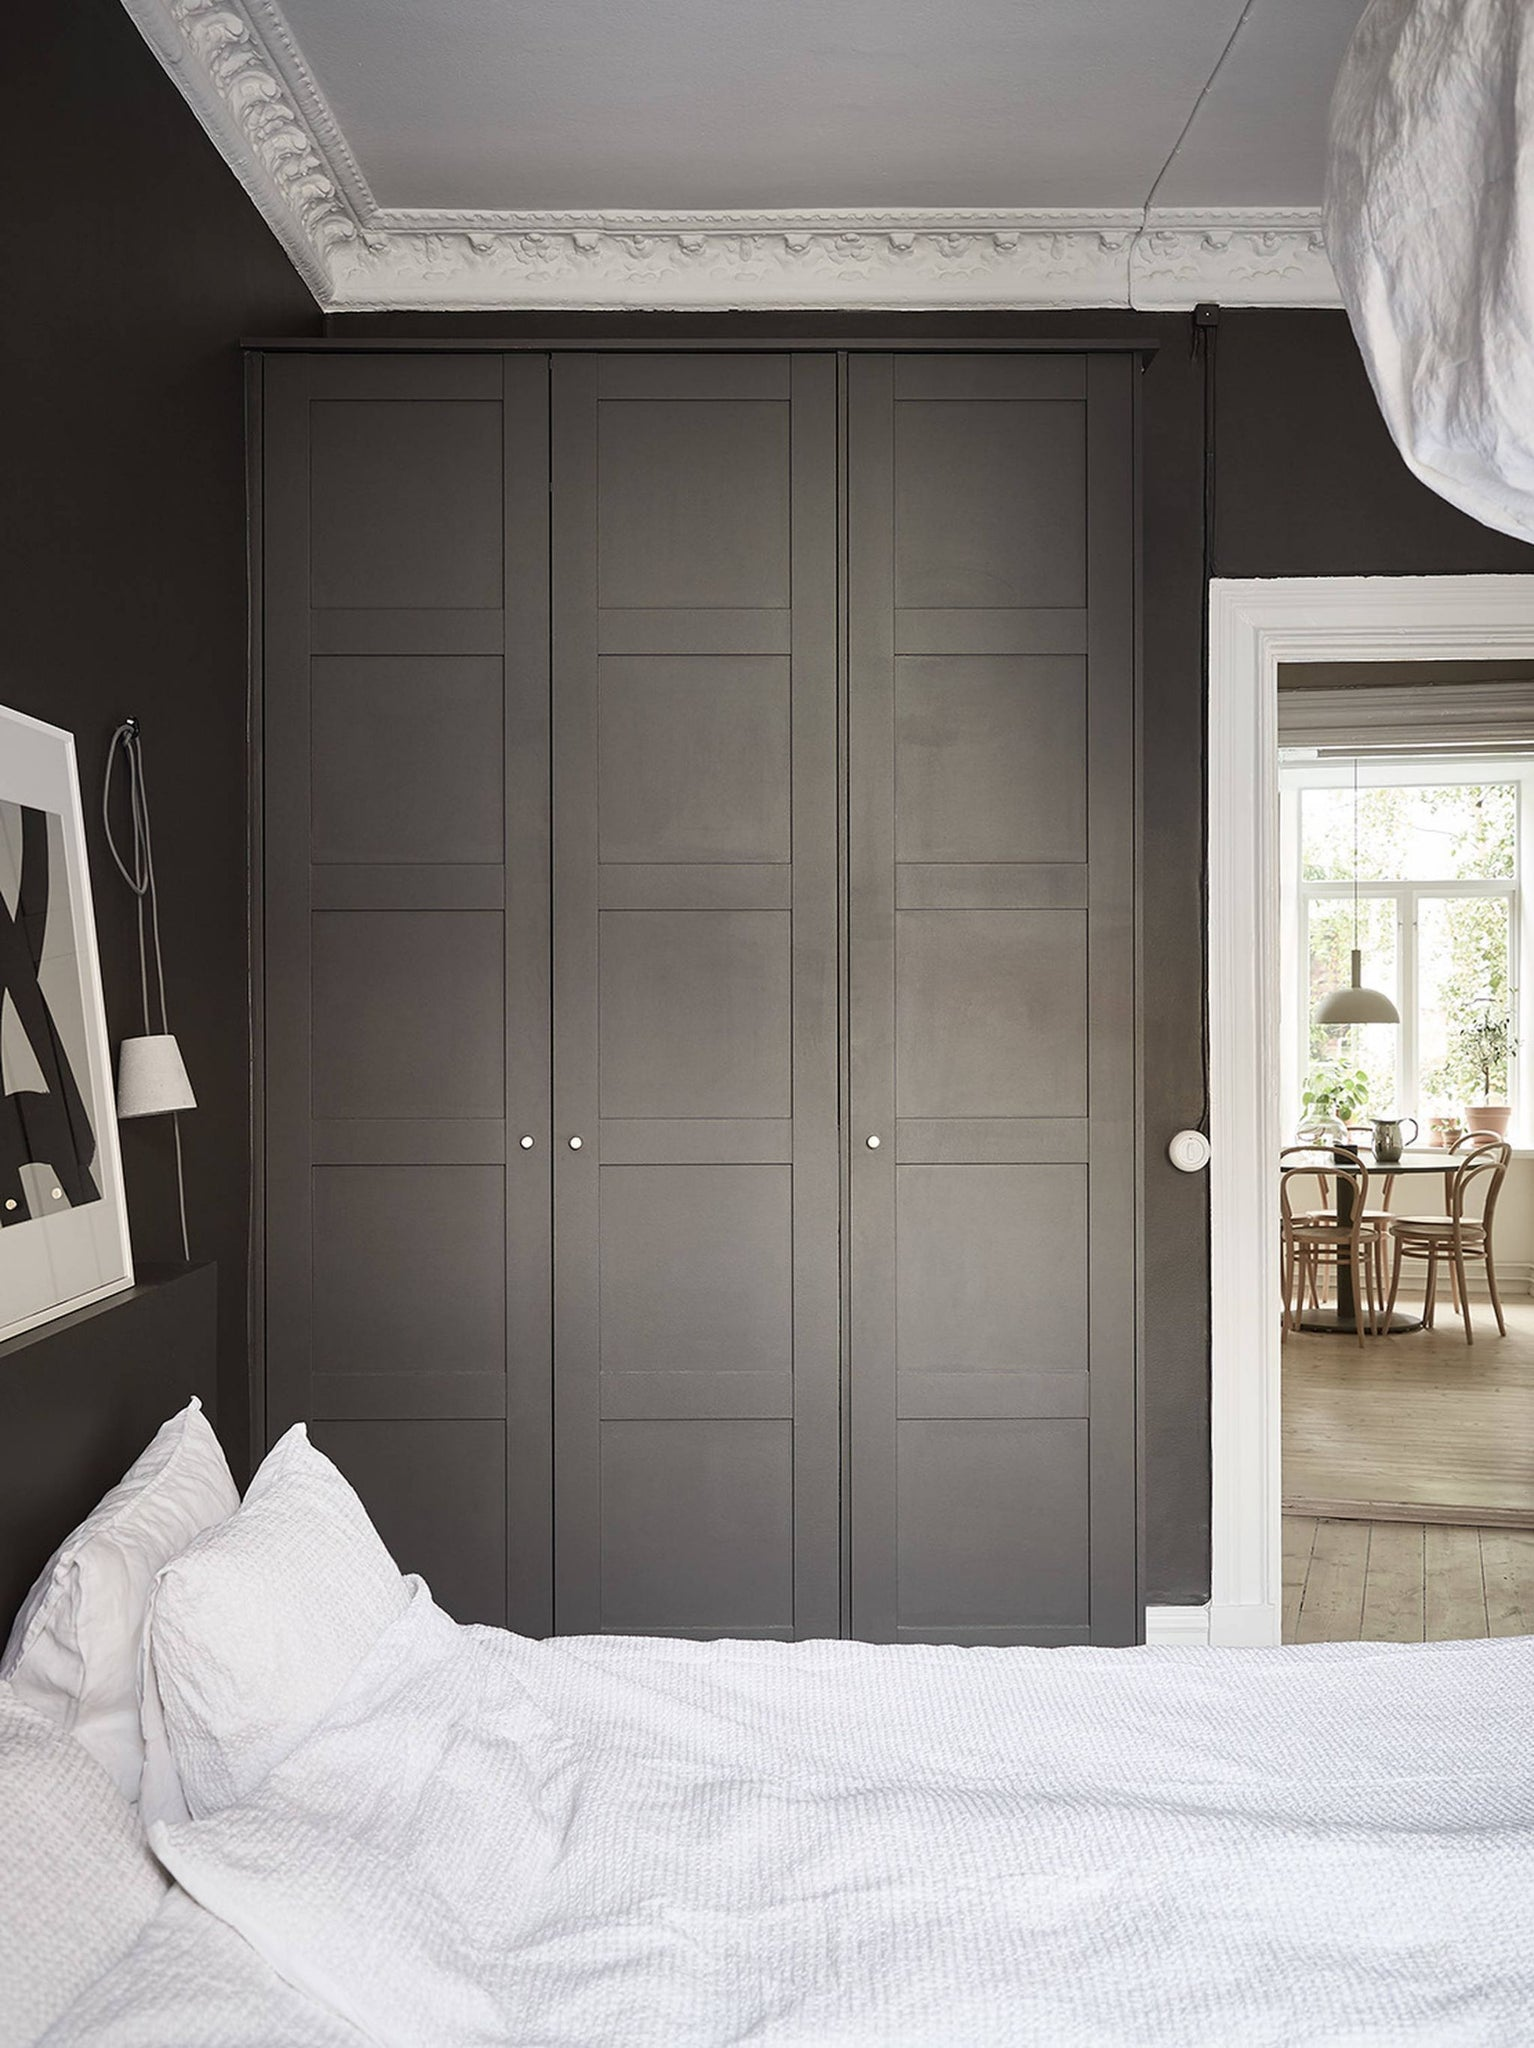 Bedroom in Gothenburg with stunning dark walls